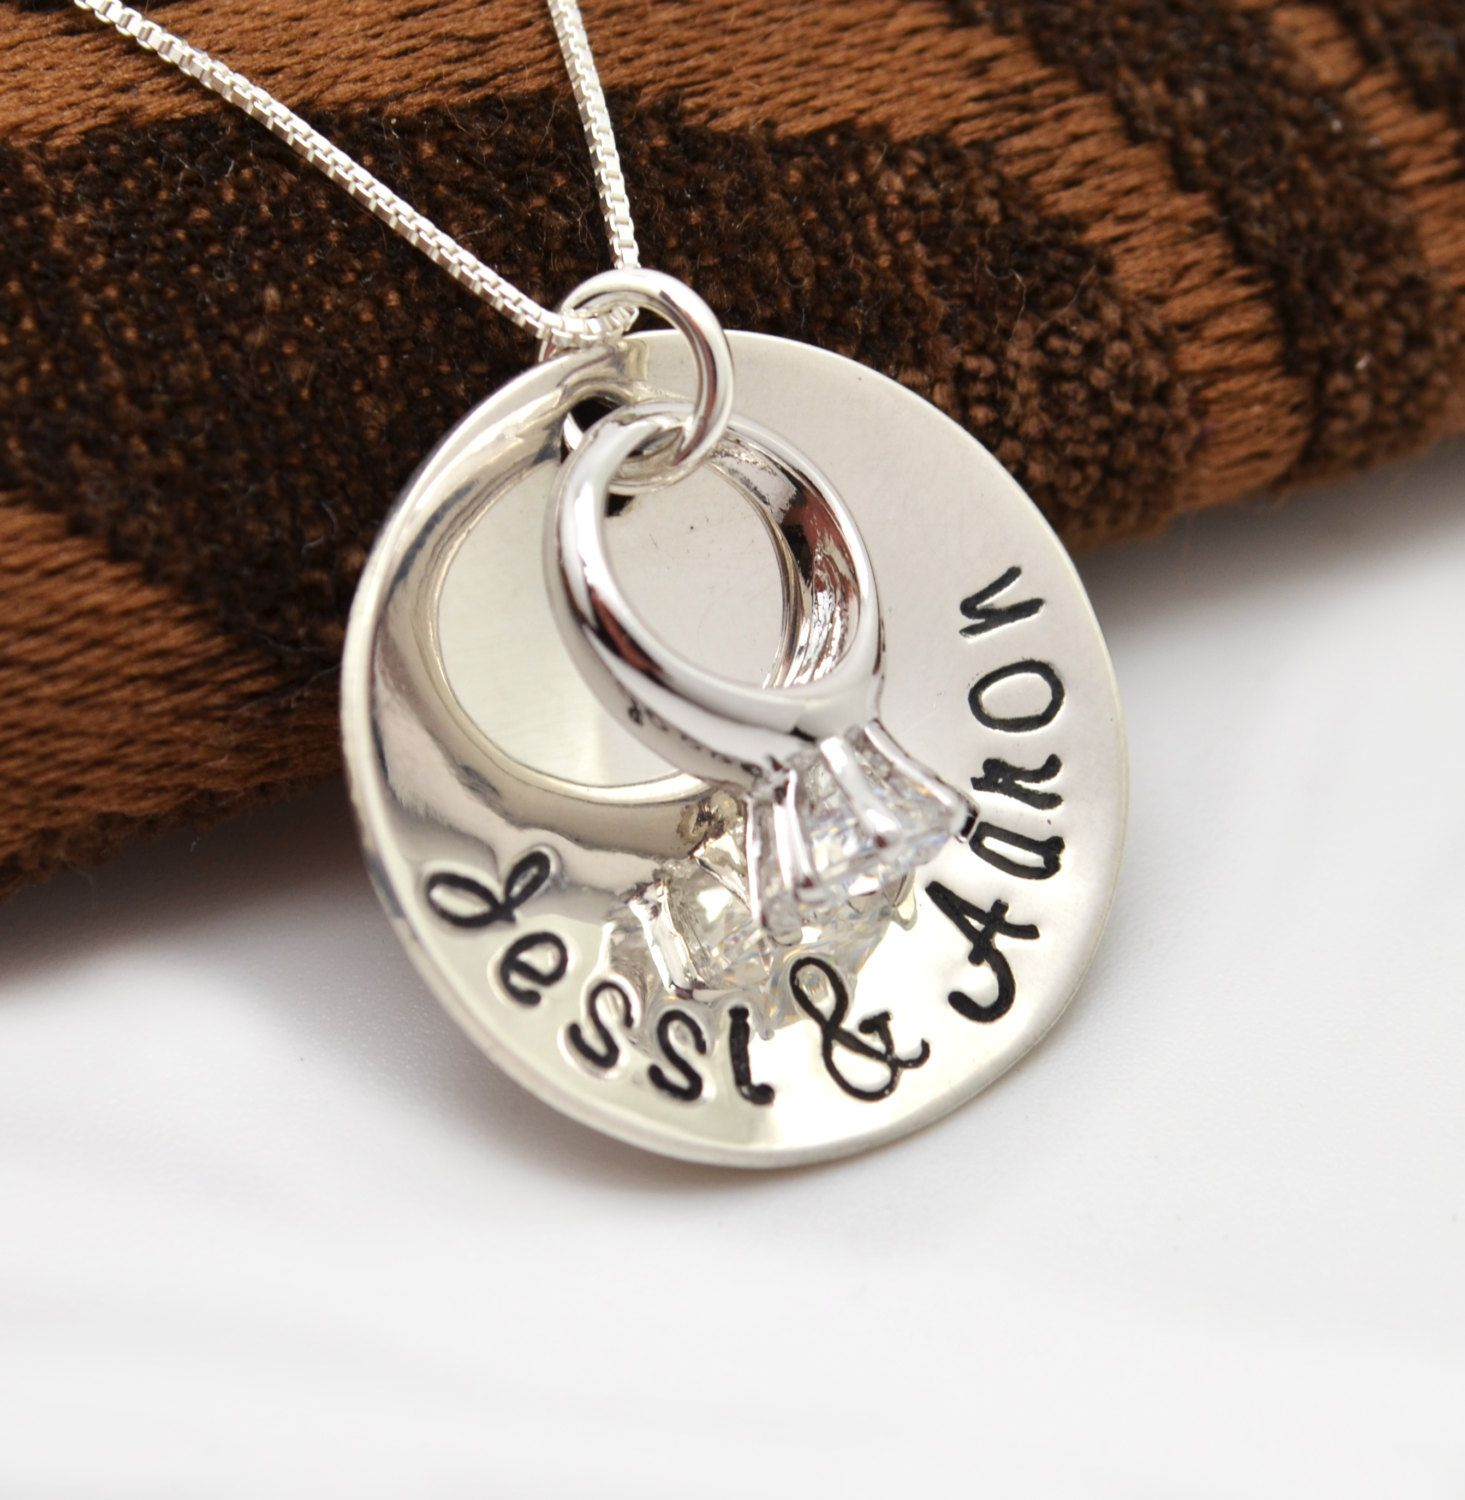 Keepsake Wedding Gifts: Personalized Sterling Silver Engagement Ring Necklace